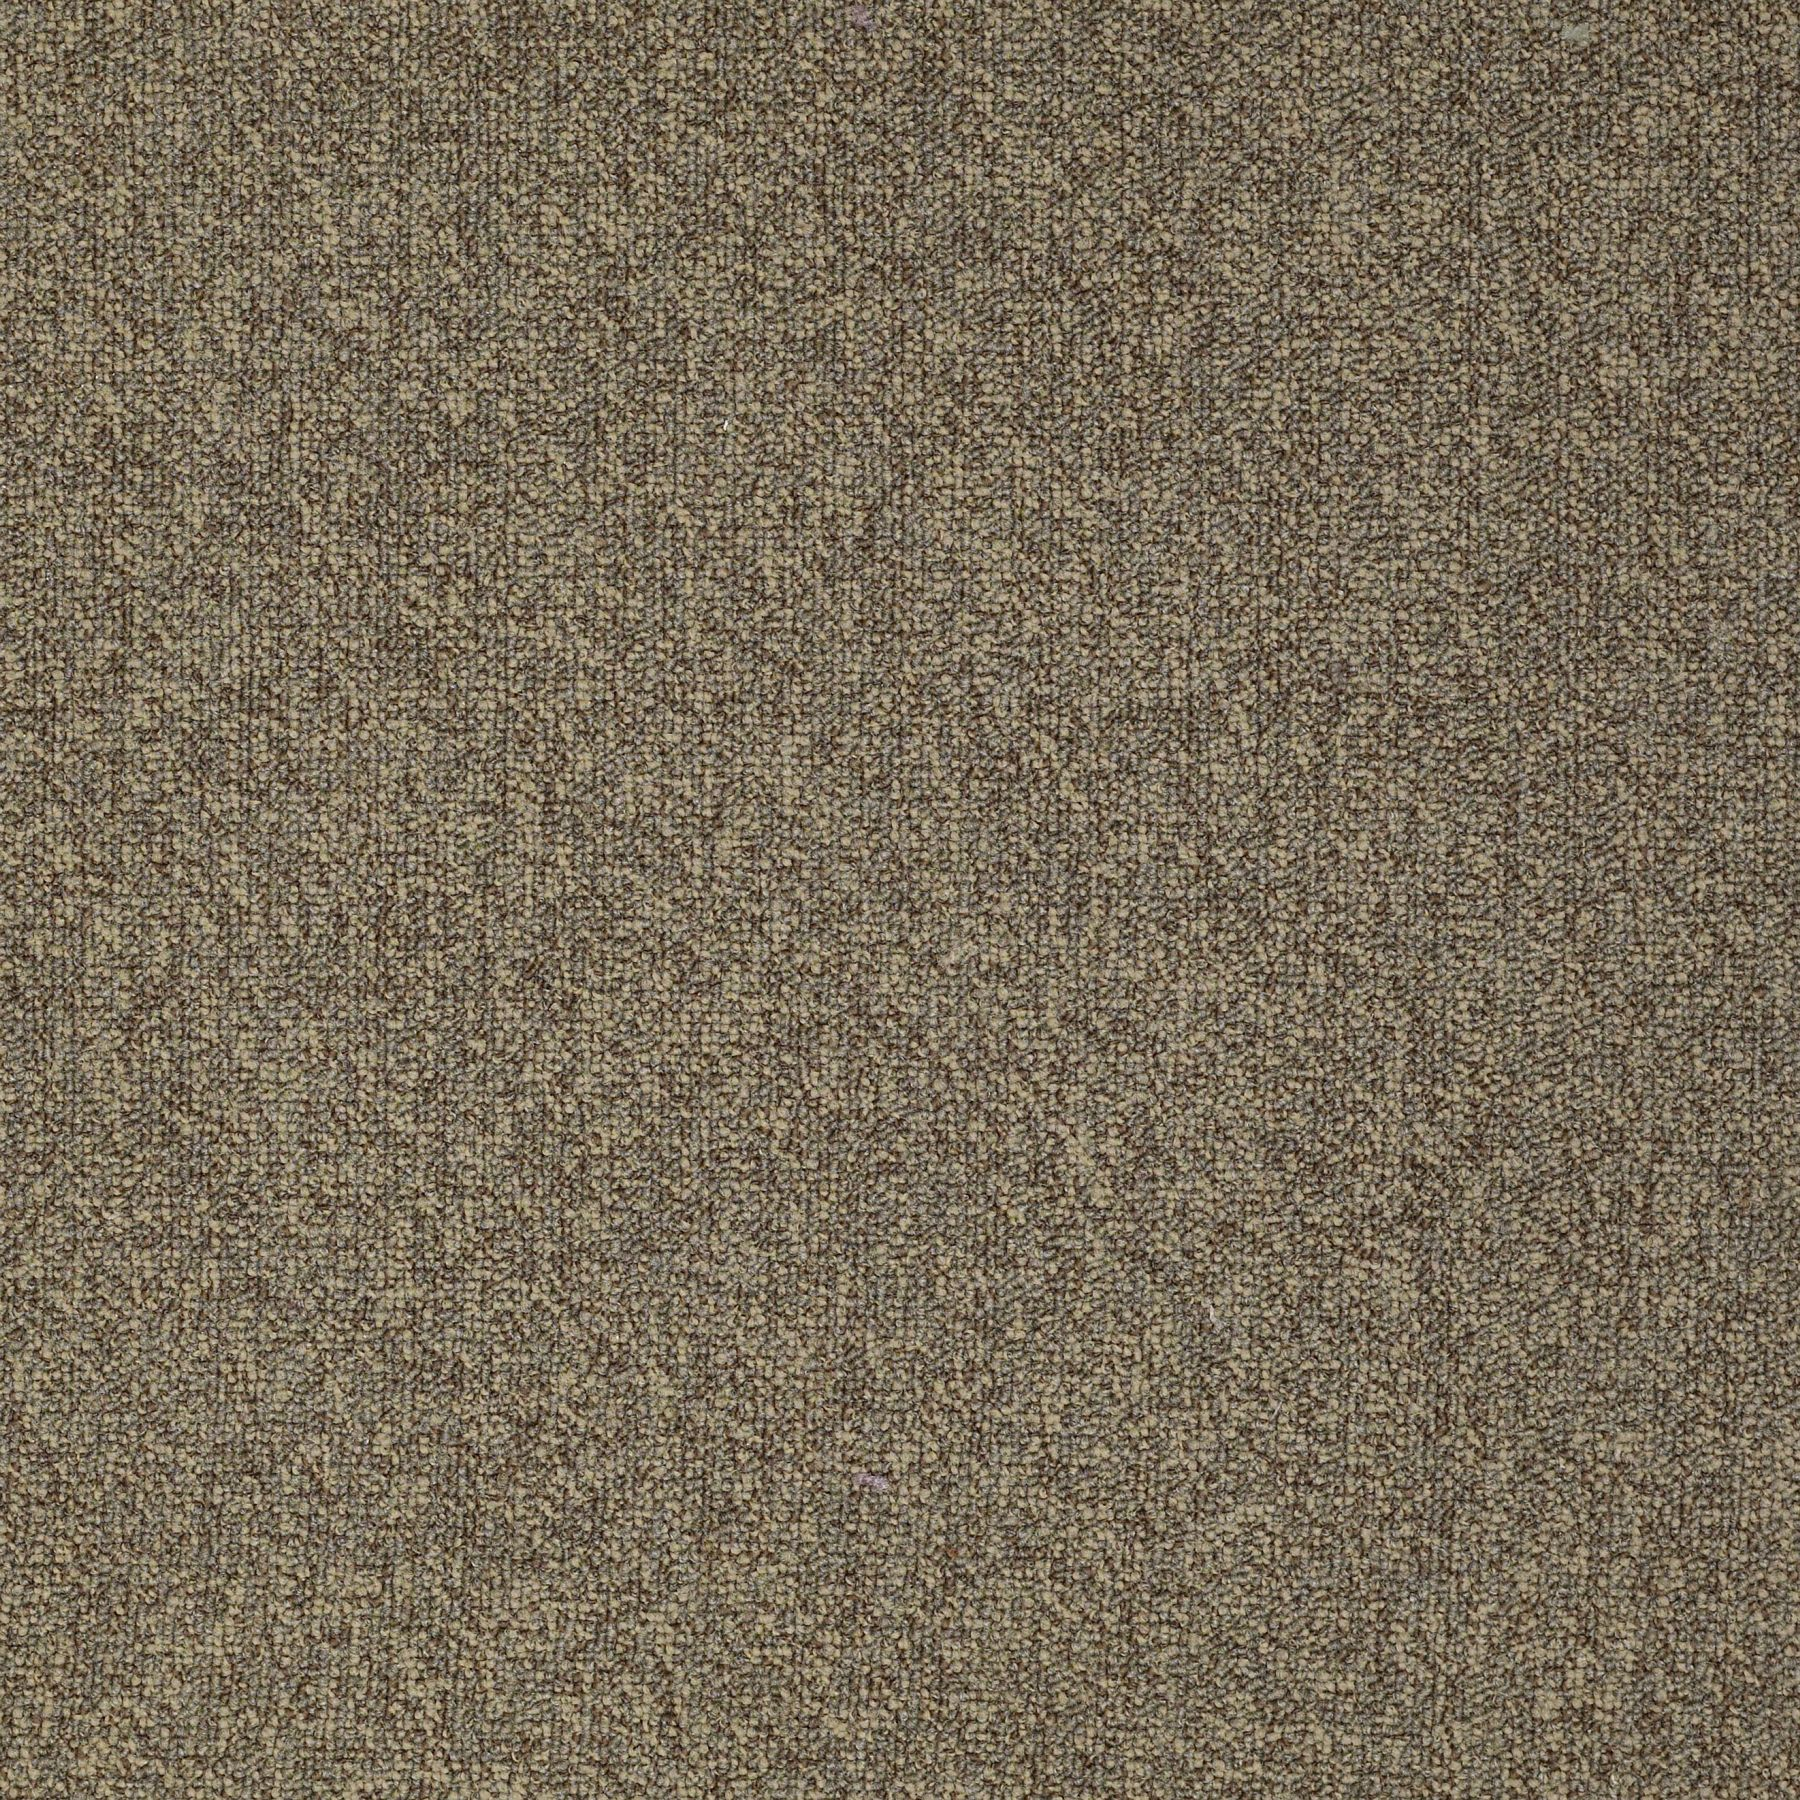 54676 Scoreboard II 28 SLP Color 00110 Play Off Commercial Carpet